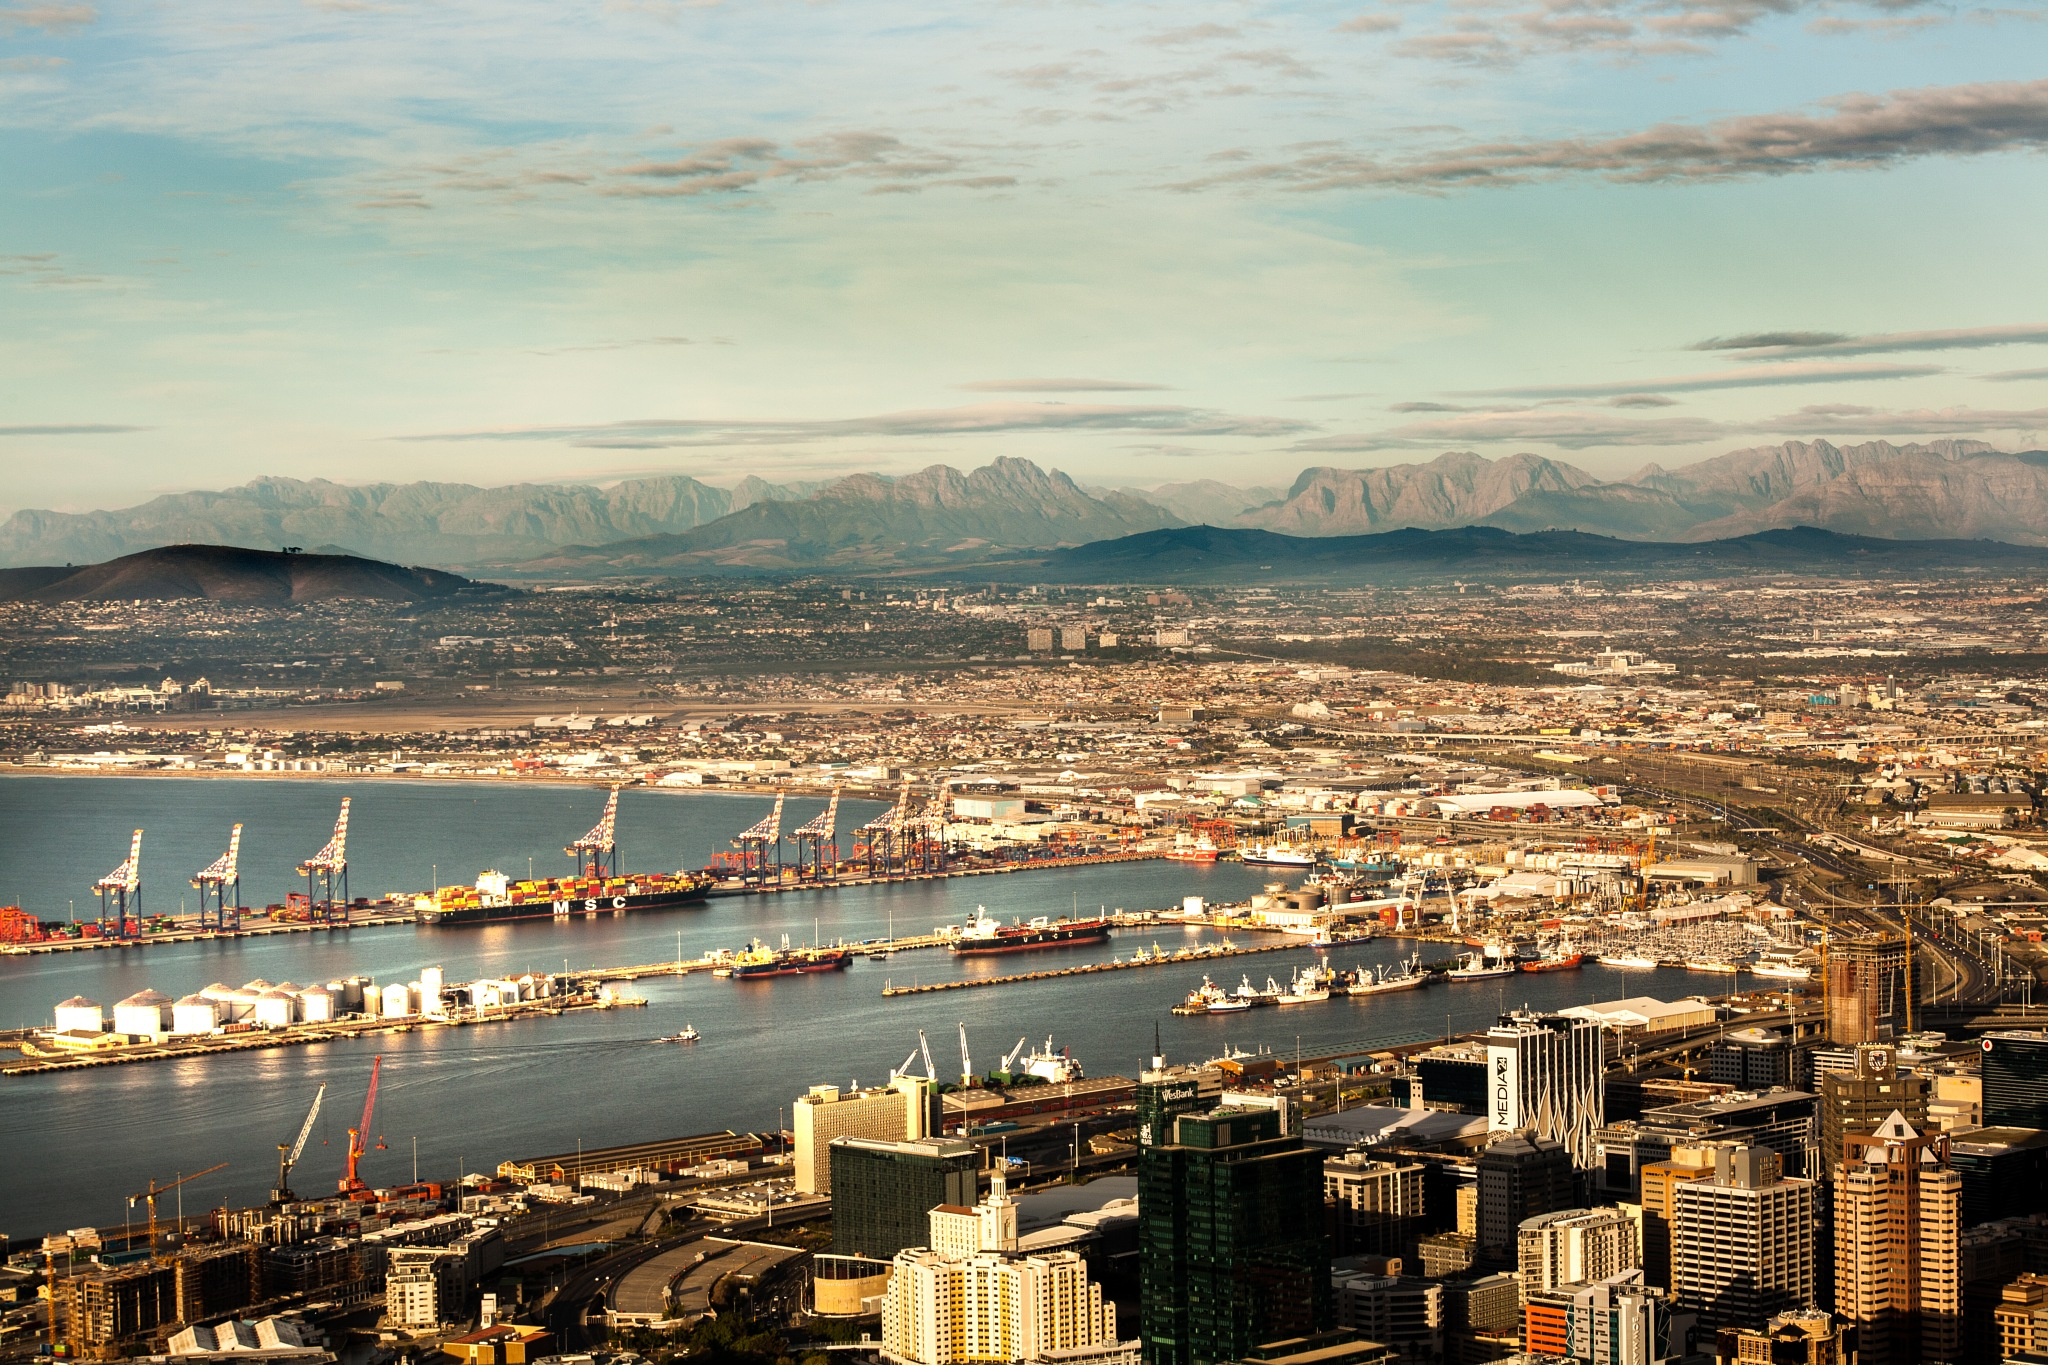 Cape Town harbour with the Stellenbosch mountains in the background by Nauta Piscatorque